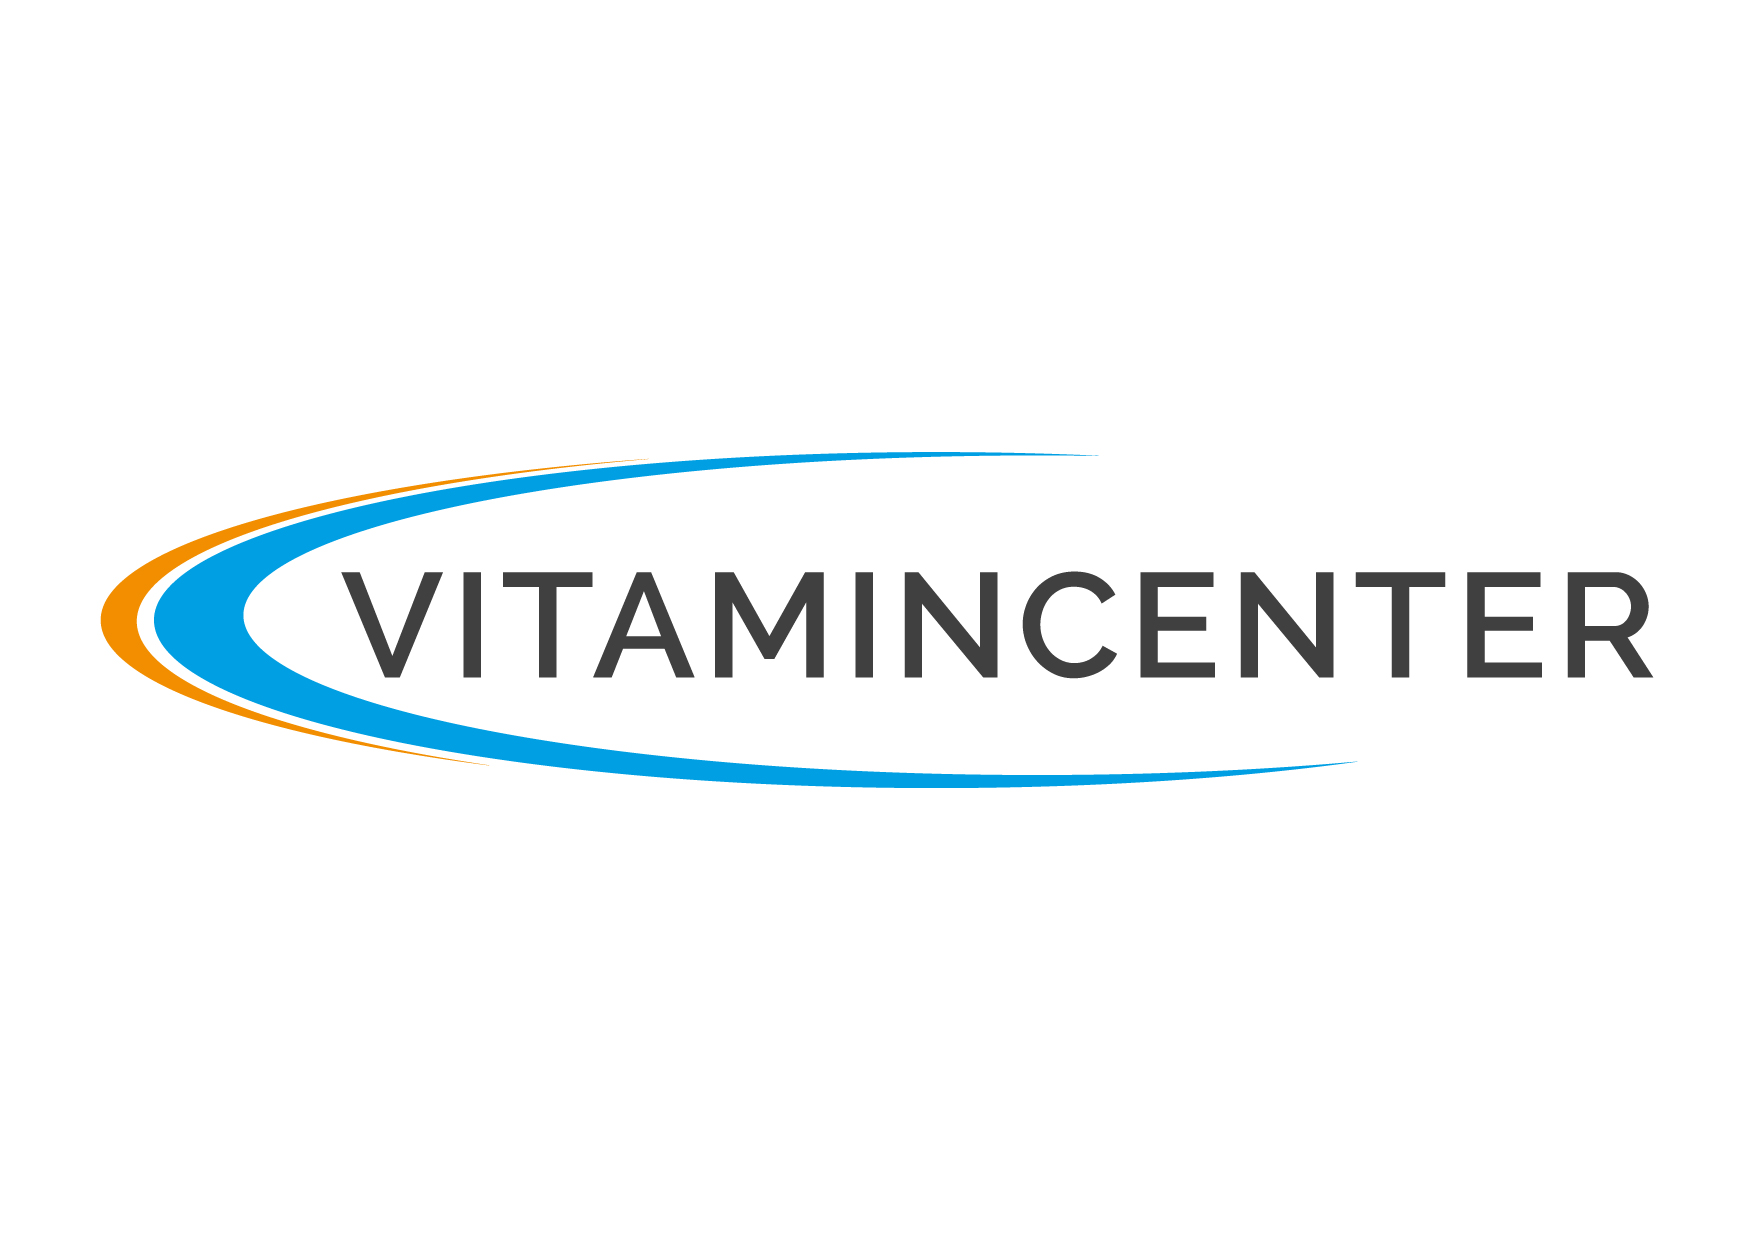 VITAMINCENTER